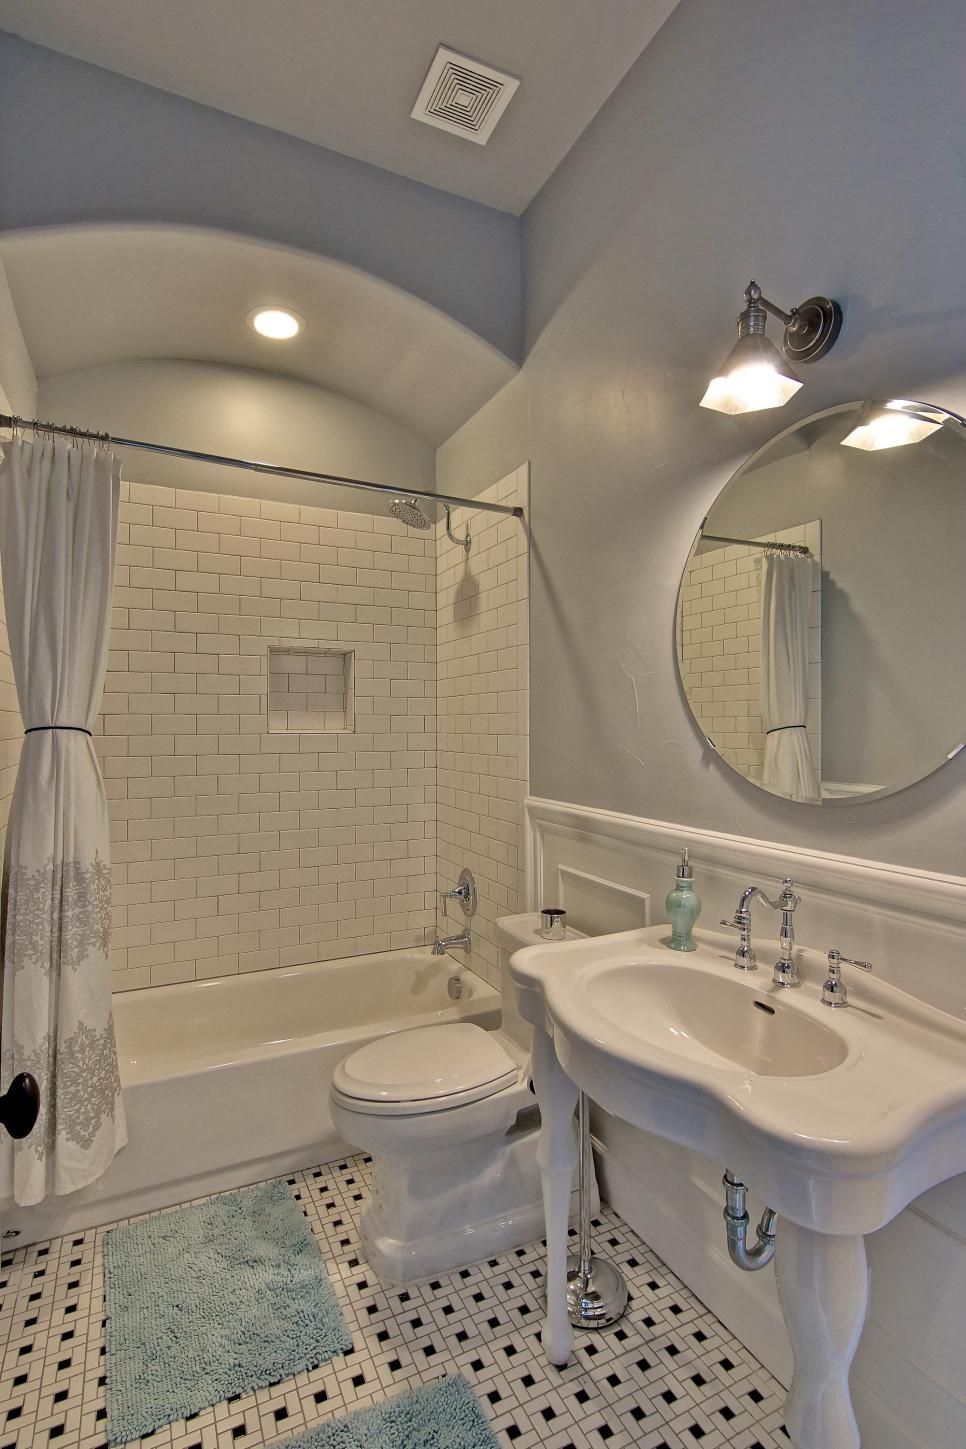 Black and white tile floors and a white tile shower create ...